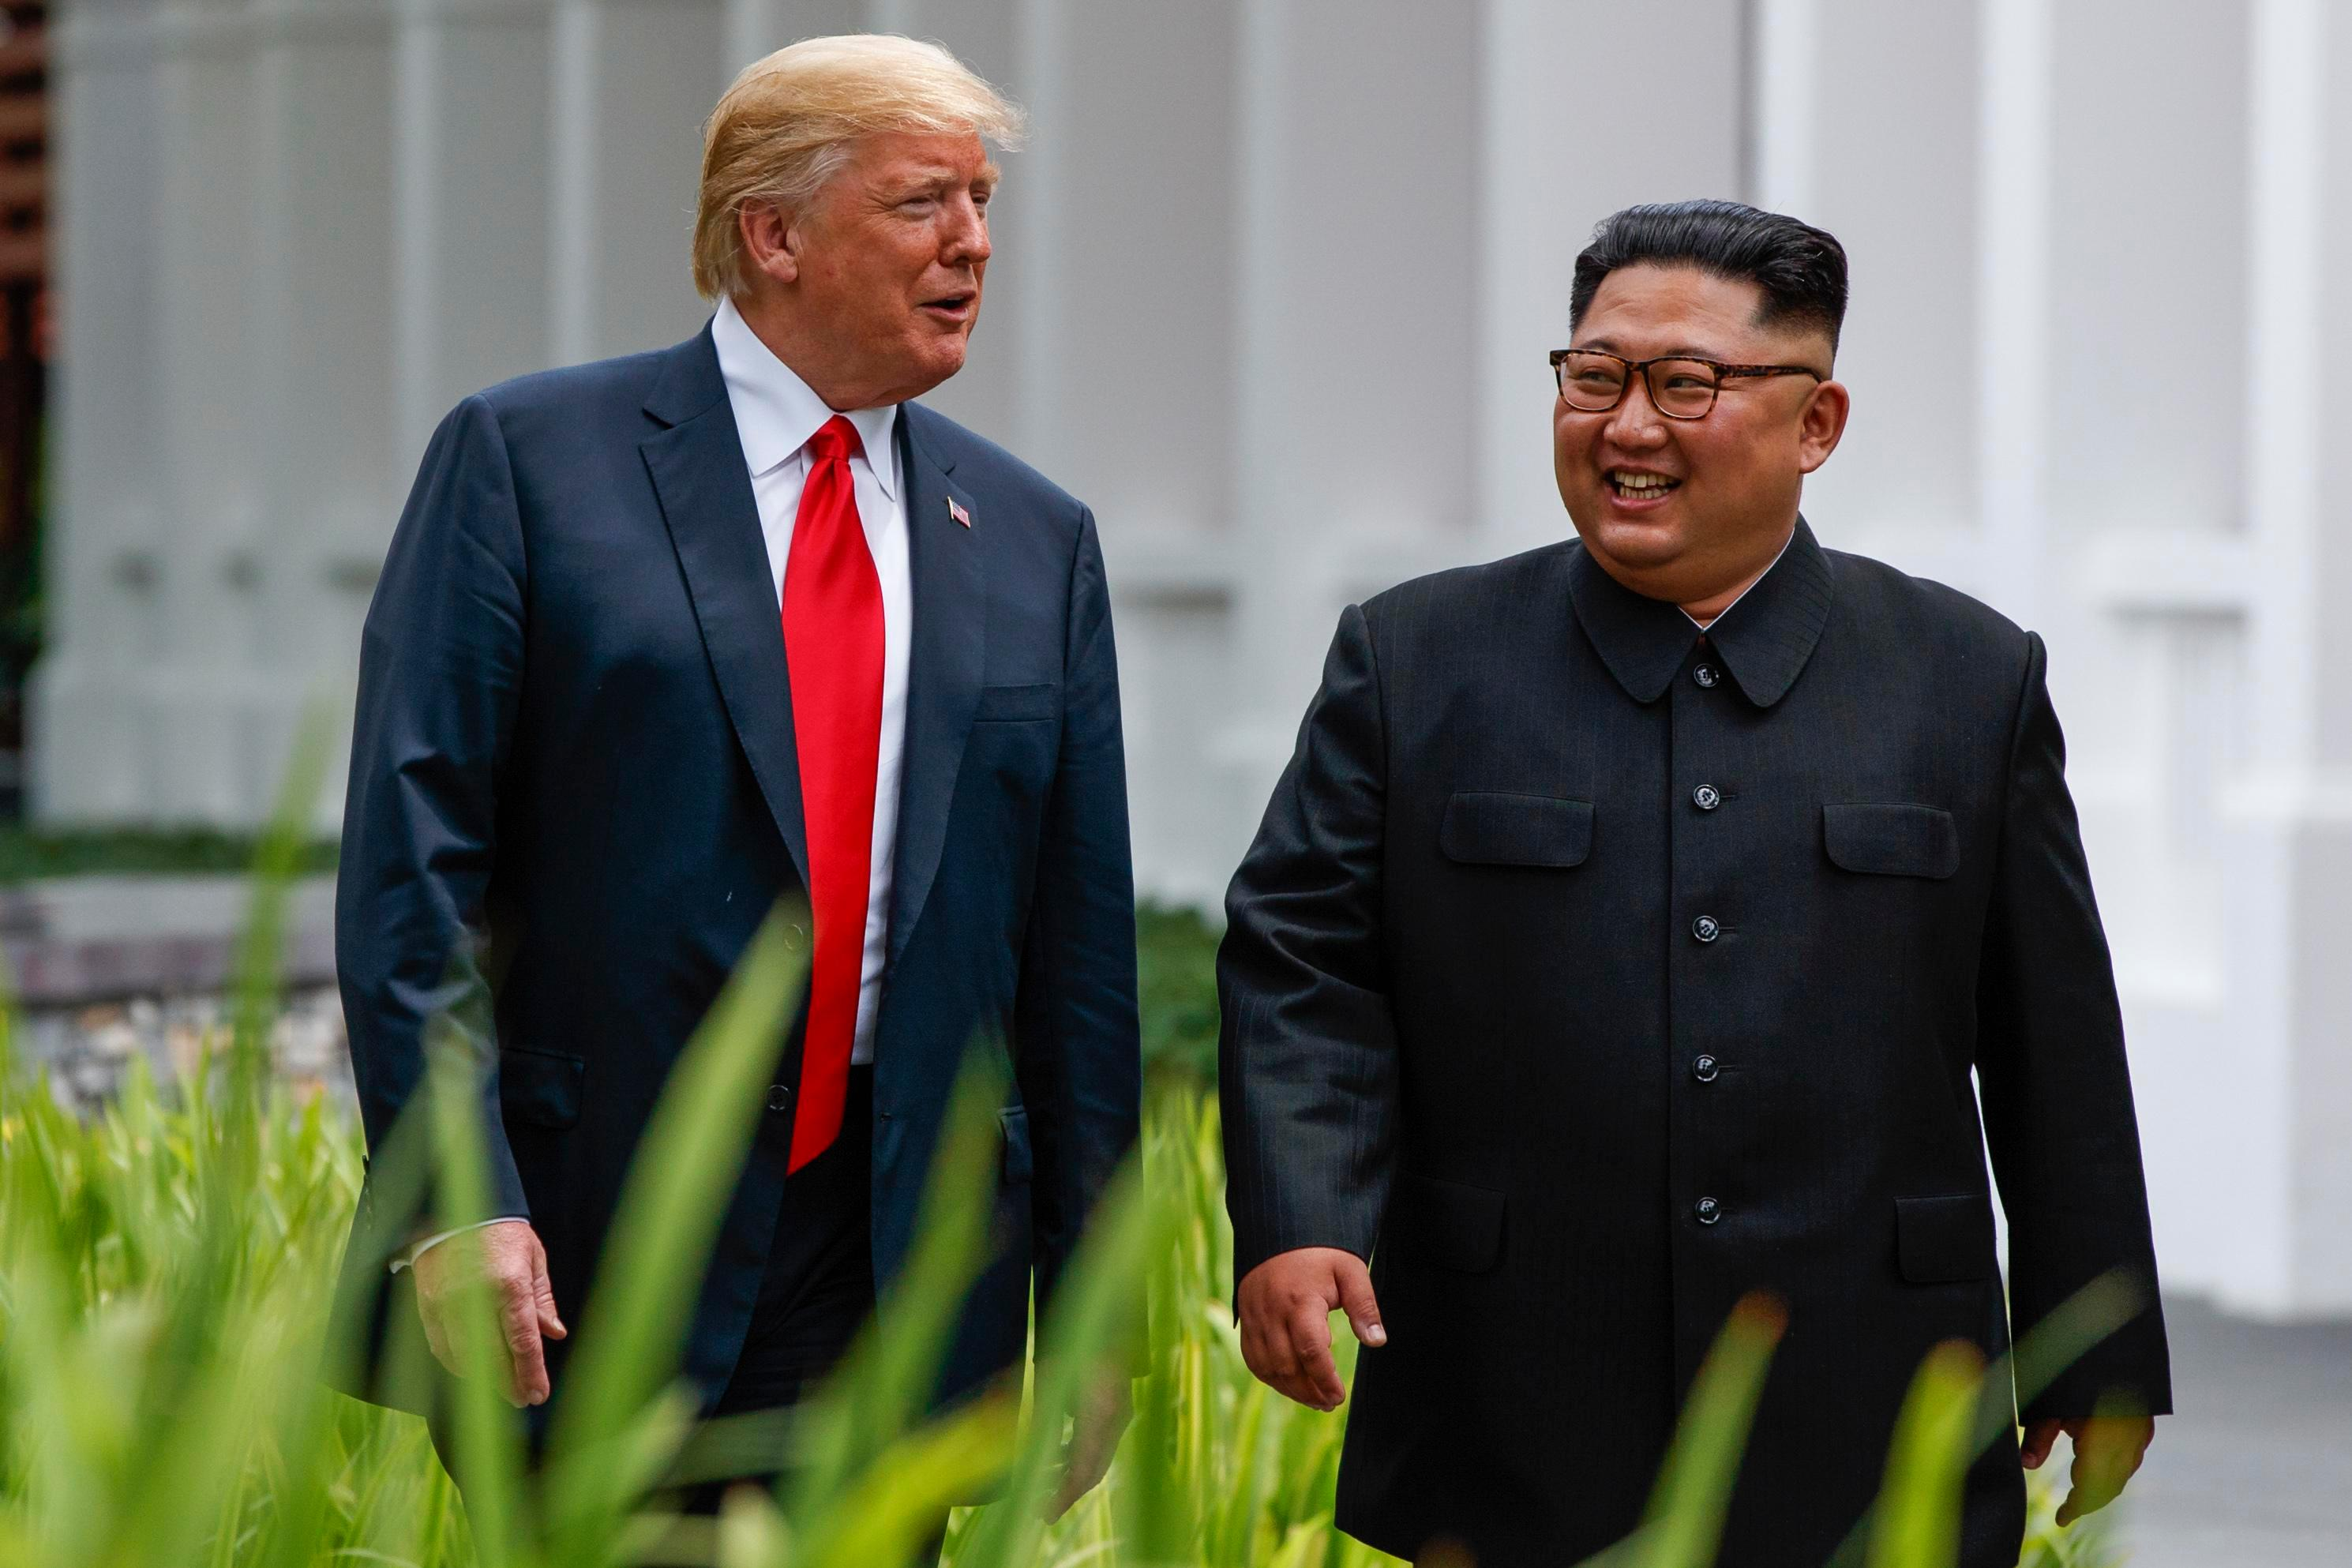 Kim Jong-un officially accepts Donald Trump's invitation to the White House